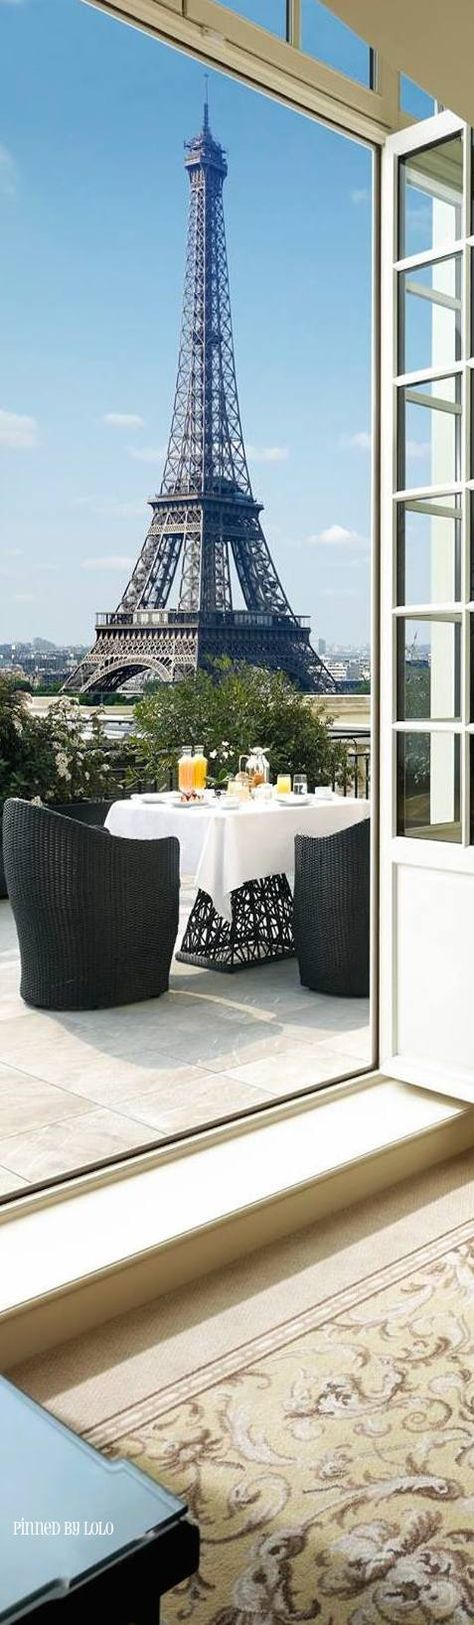 Shangri-La Hotel...Paris with the most incredible view of the Eiffel Tower. What to pack for Paris?